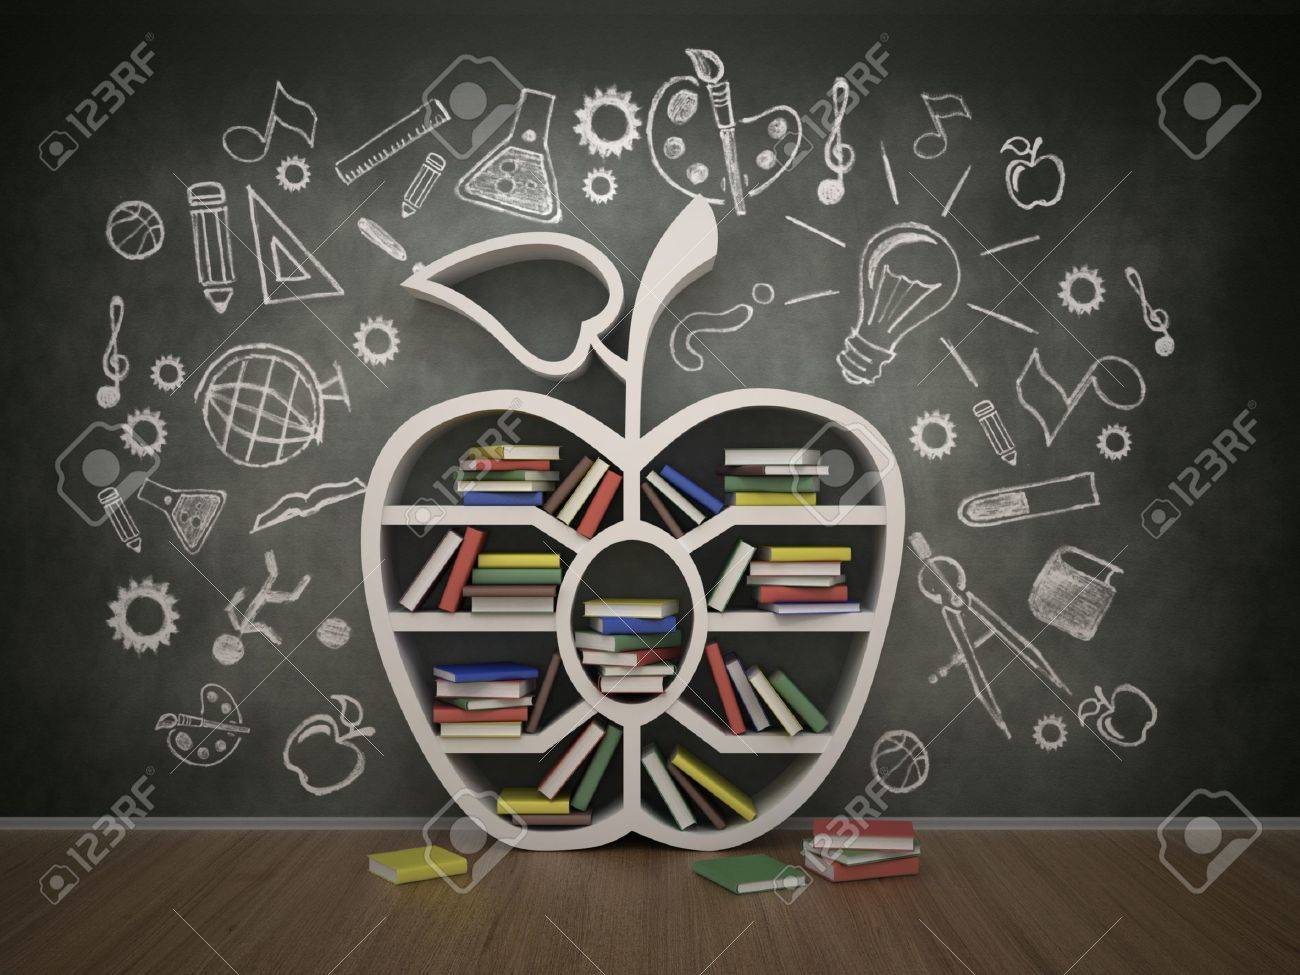 1300x975 Book Shelf In Form Of Apple And Drawing Concept, 3d Stock Photo